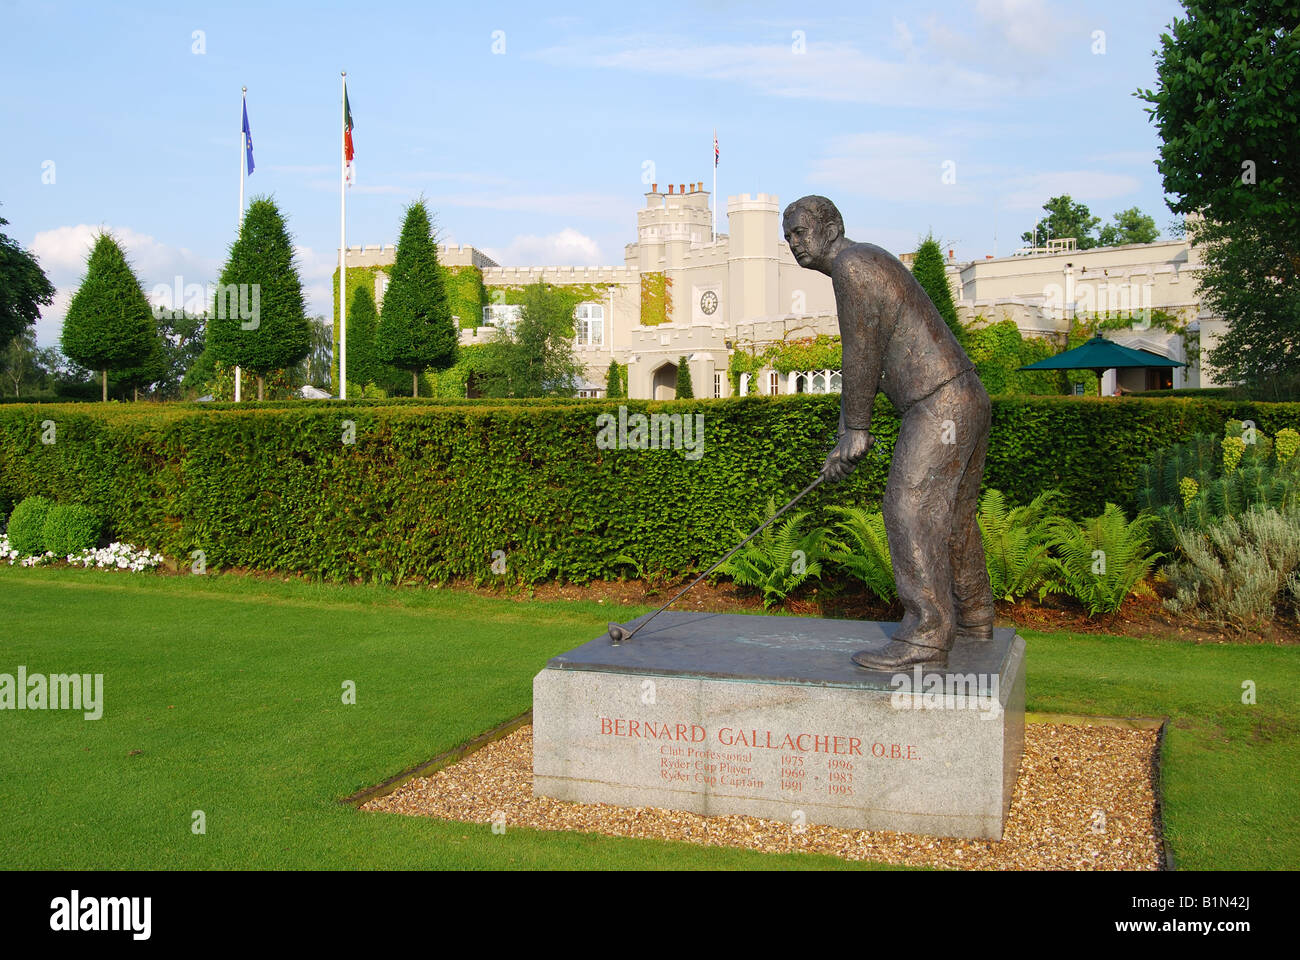 Golf At Wentworth Stock Photos Amp Golf At Wentworth Stock Images Alamy